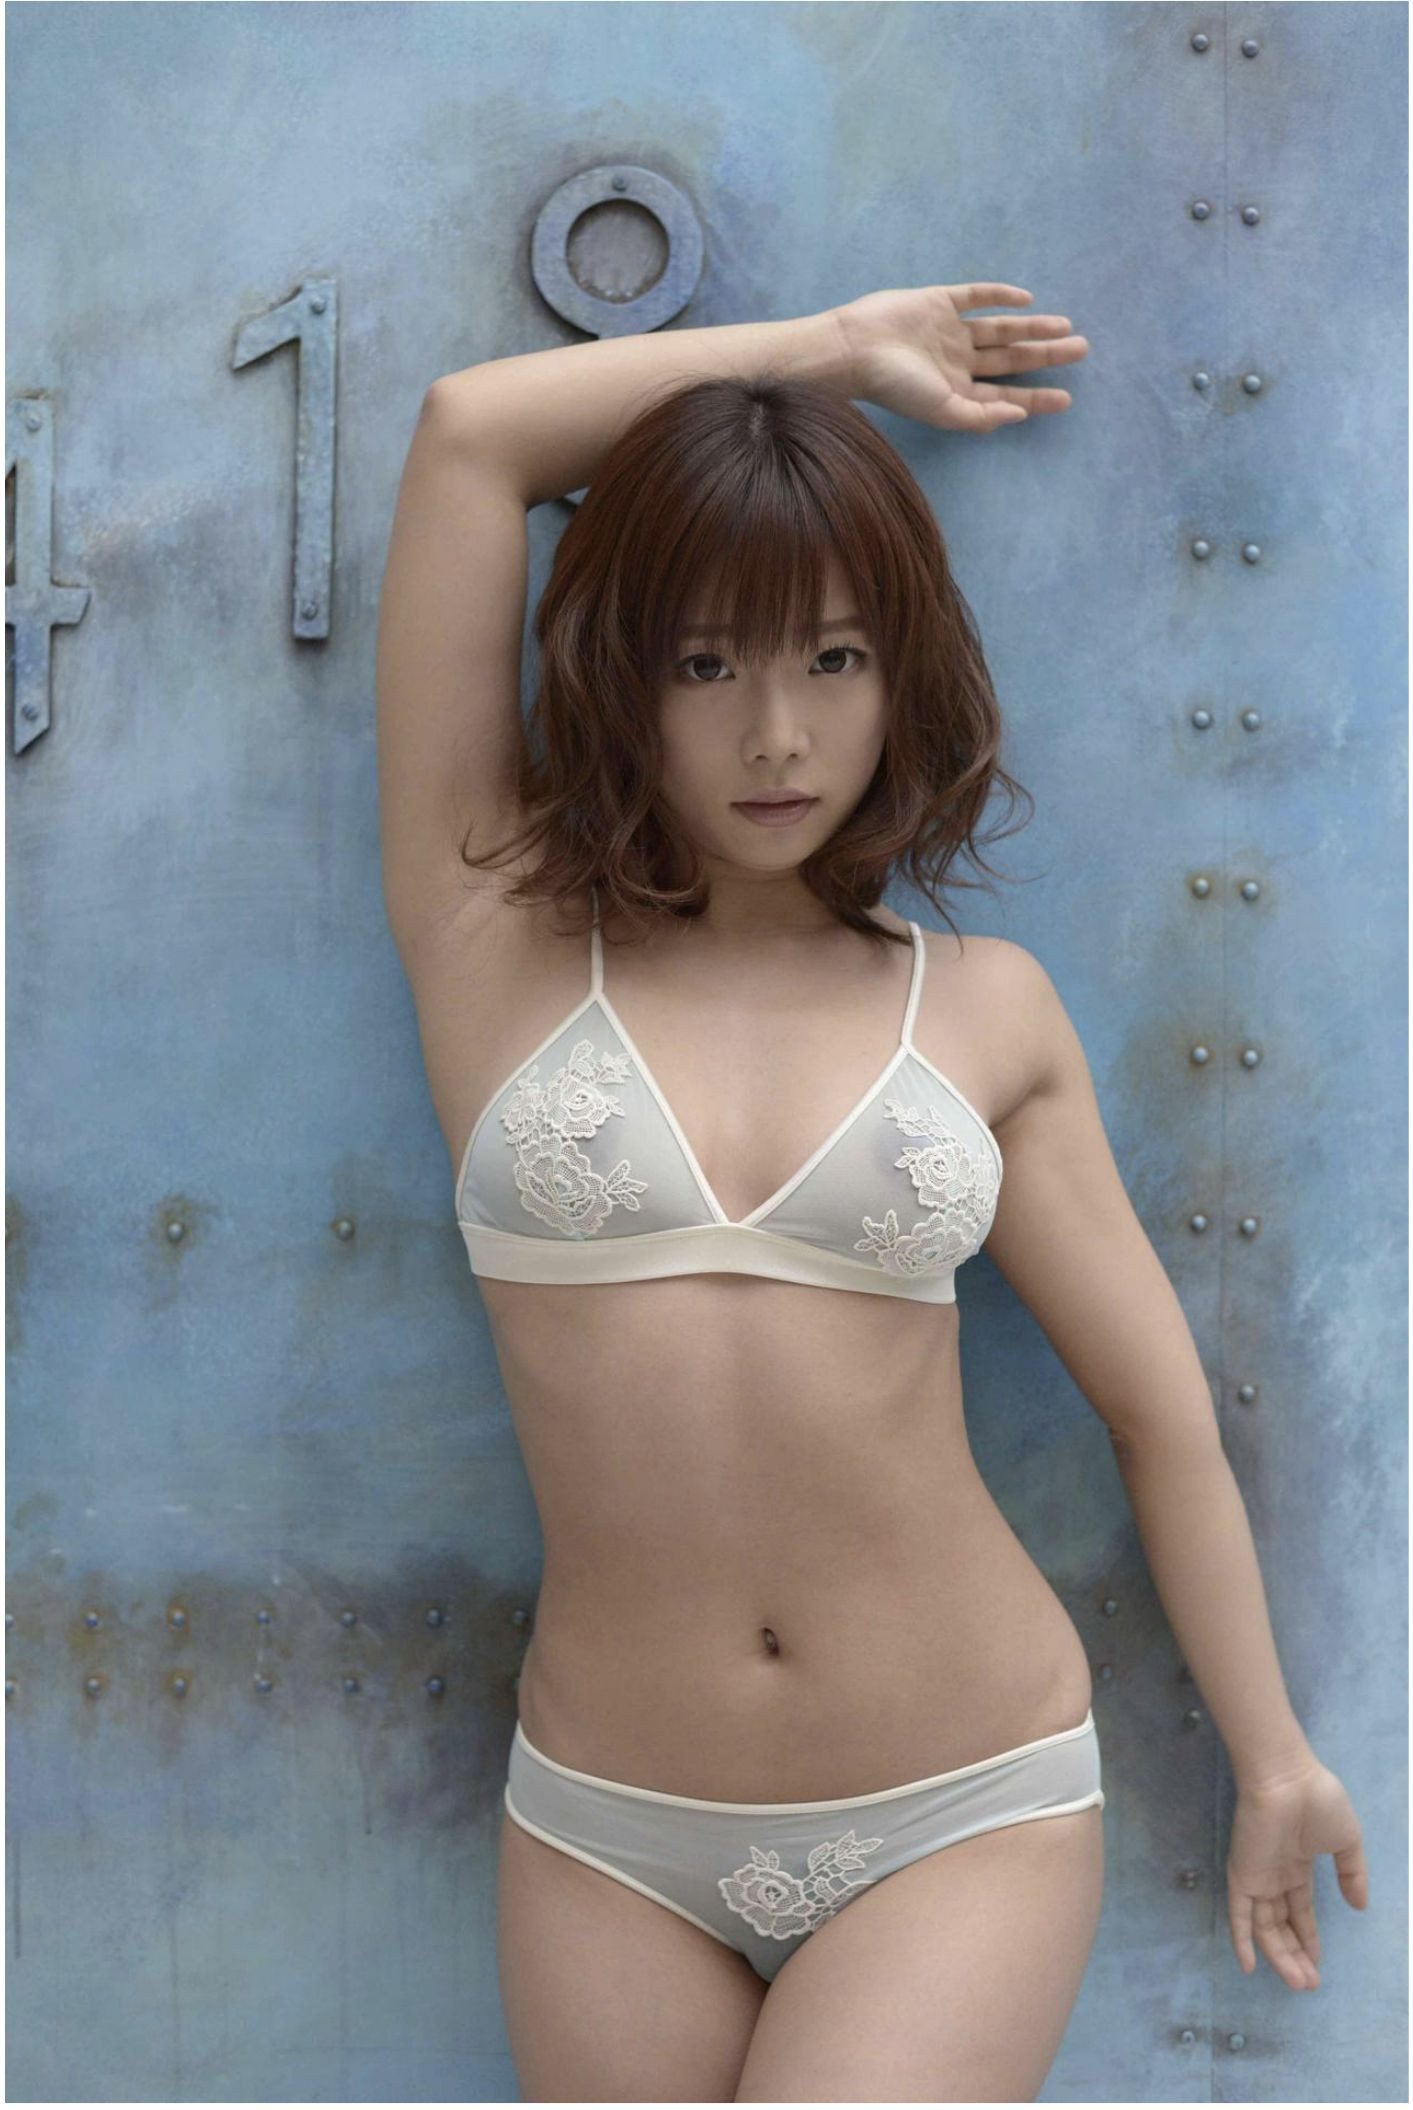 SOFT ON DEMAND GRAVURE COLLECTION 紗倉まな04 photo 056